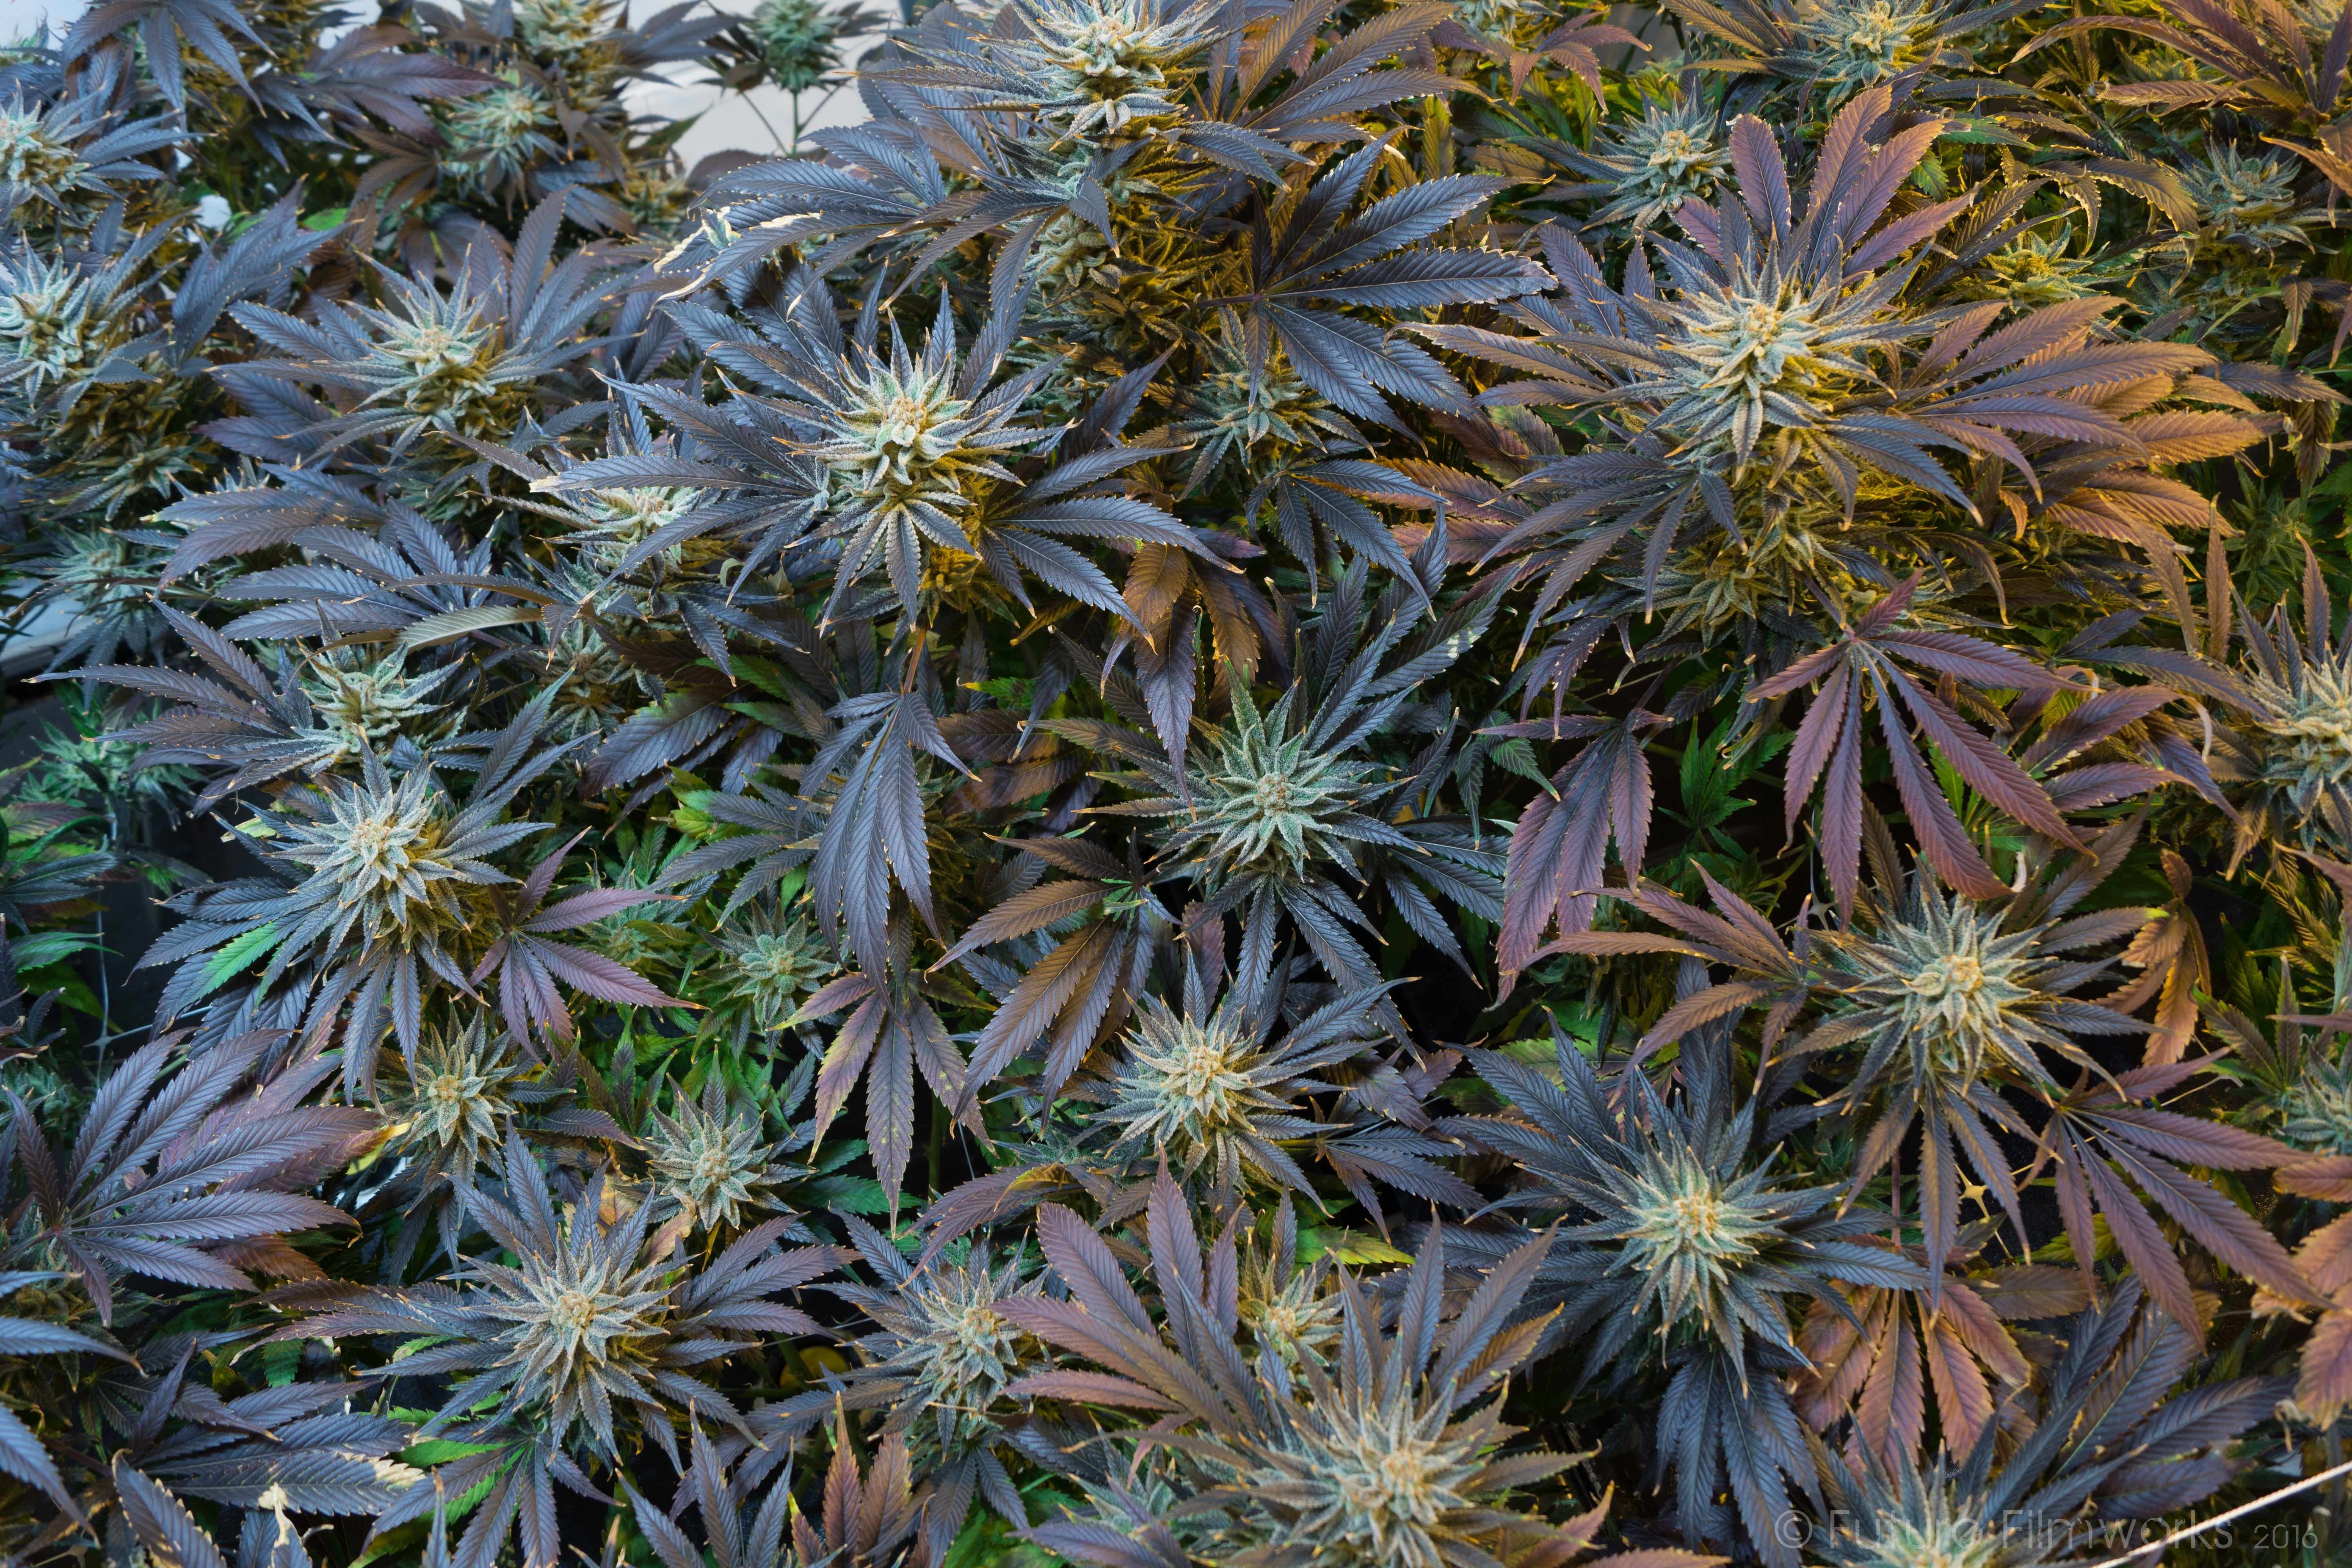 GROW YOUR OWN CANNABIS WITH THE HELP OF G2ROW